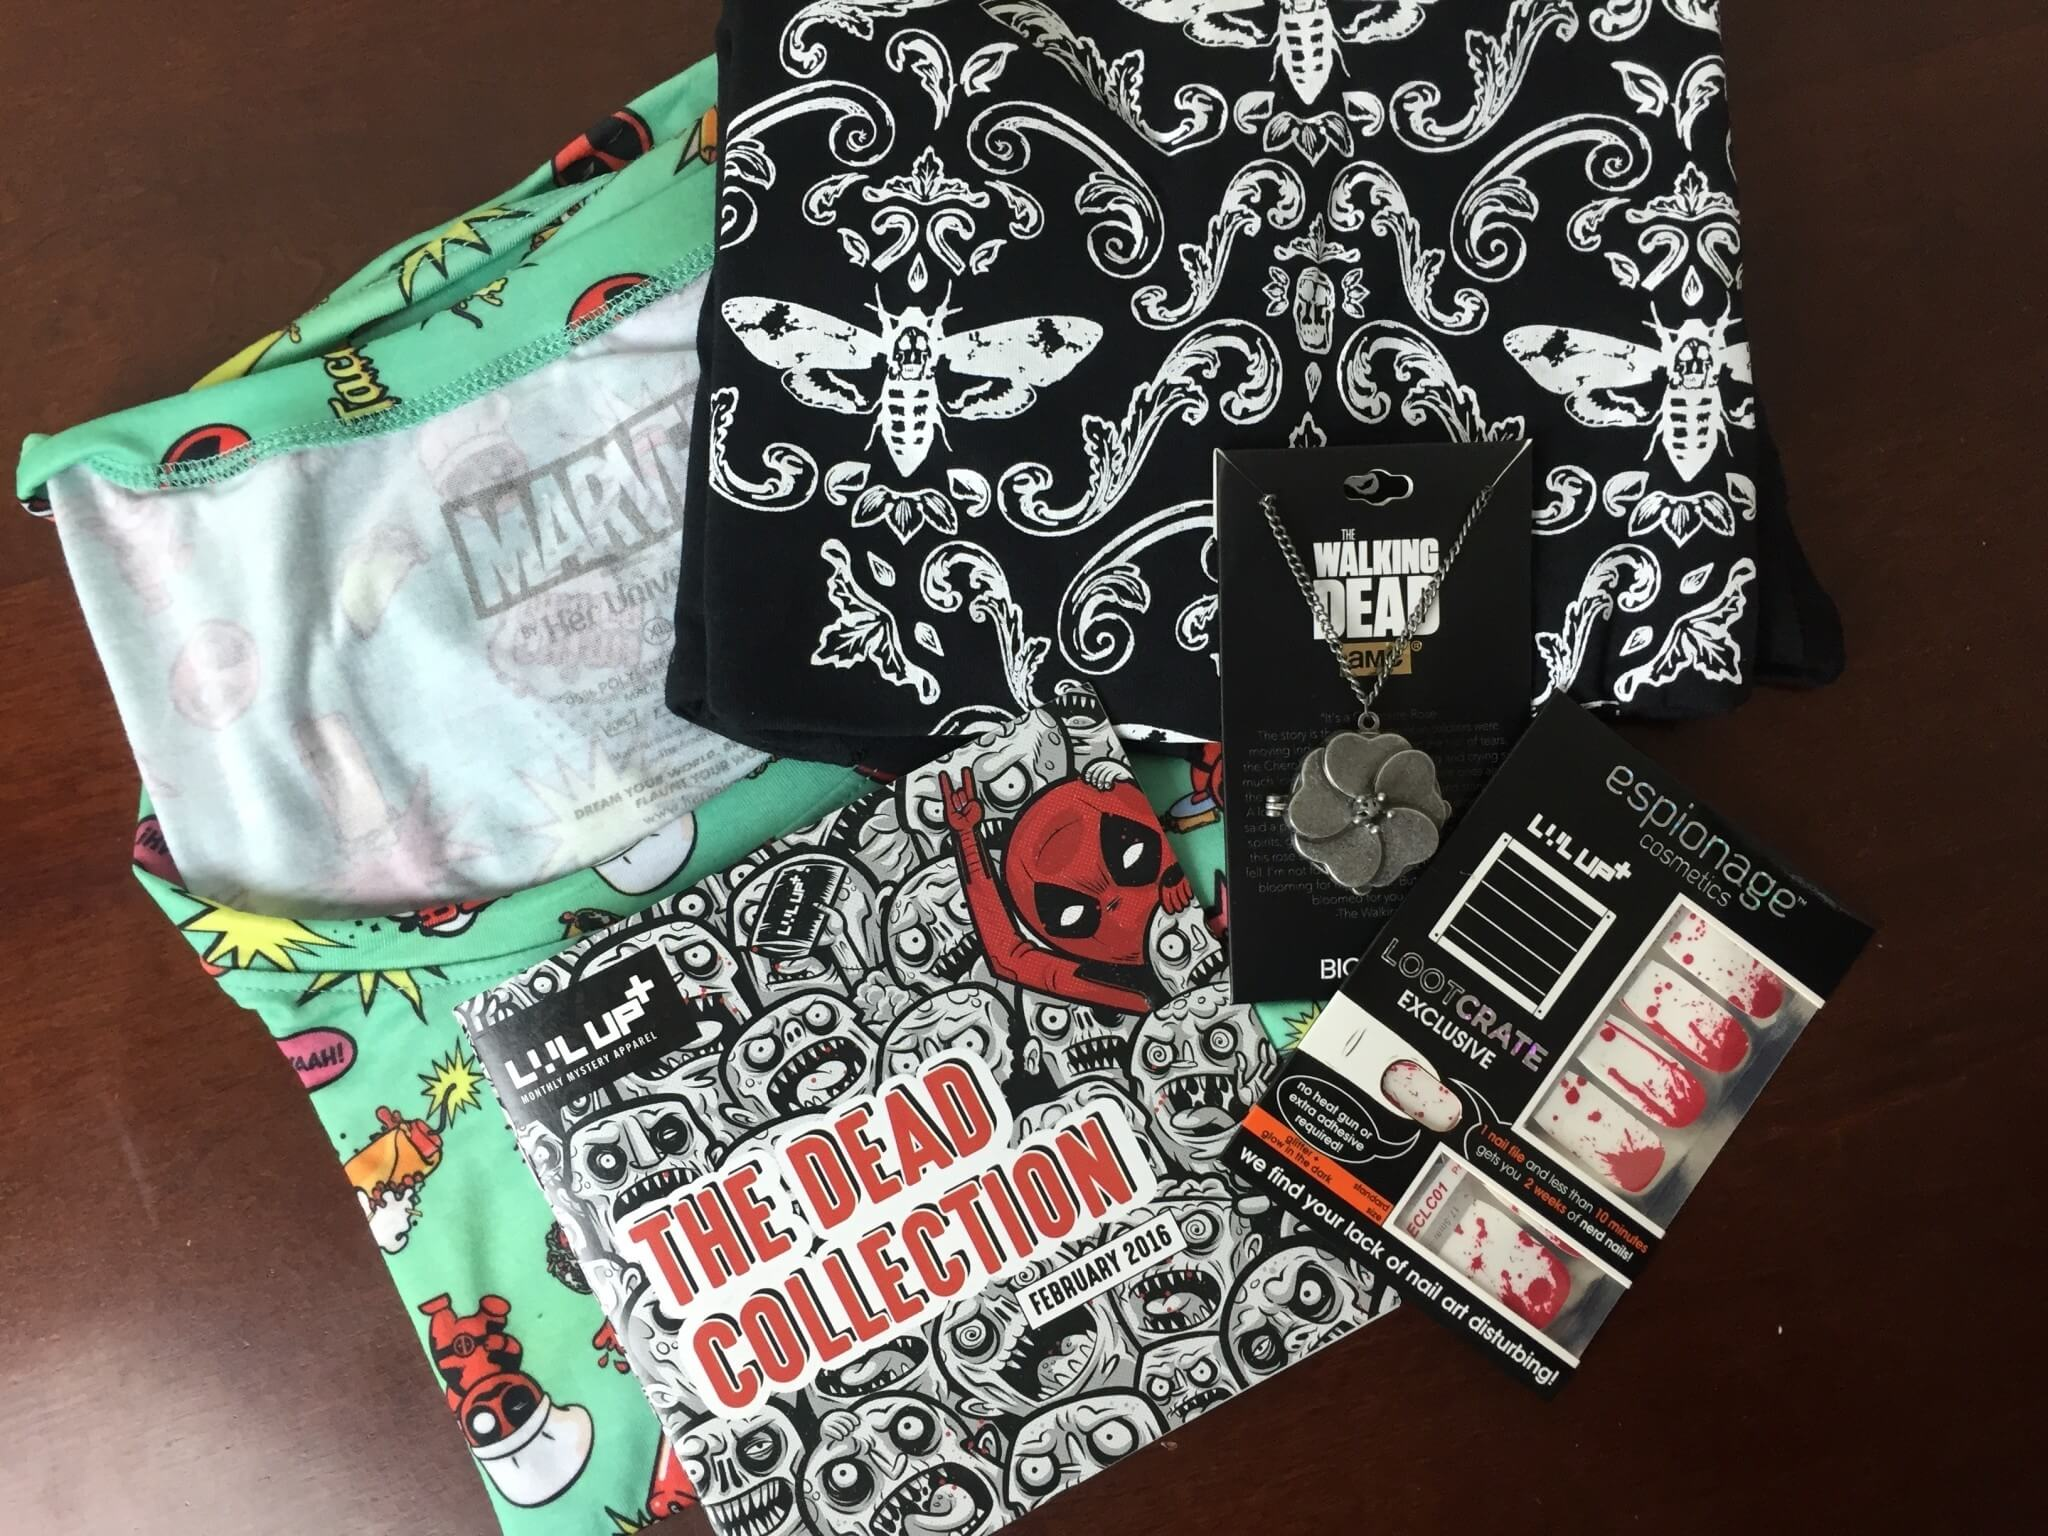 Level Up by Loot Crate T-Shirt, Women's Wearable & Accessories Reviews & Coupon – February 2016 DEAD Collection